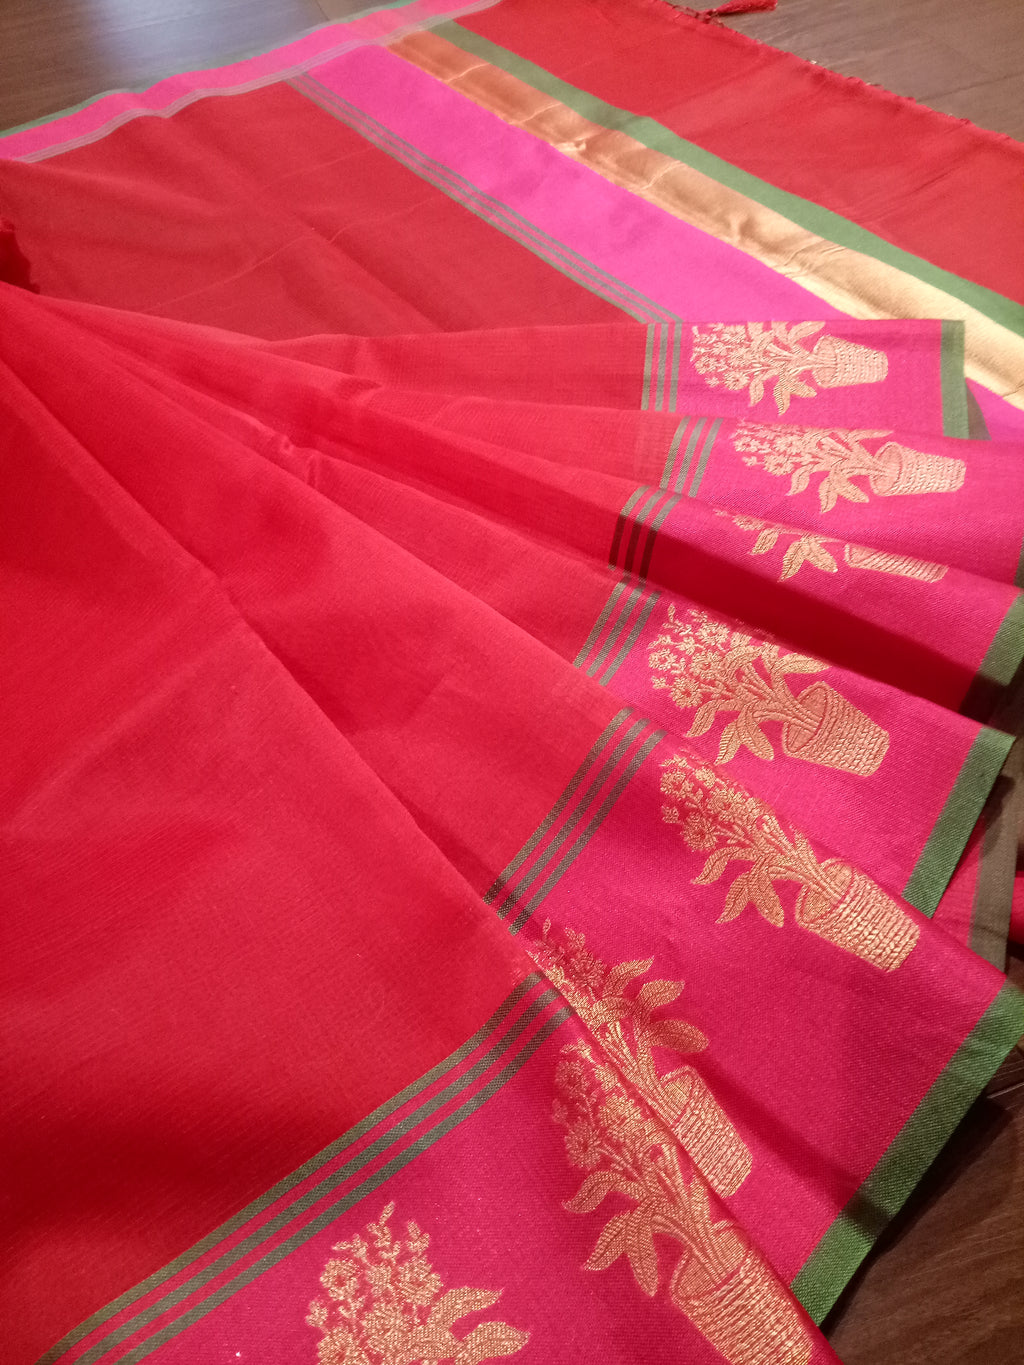 Red Chanderi saree with pink border and flowers motifs on it - EthnicRoom